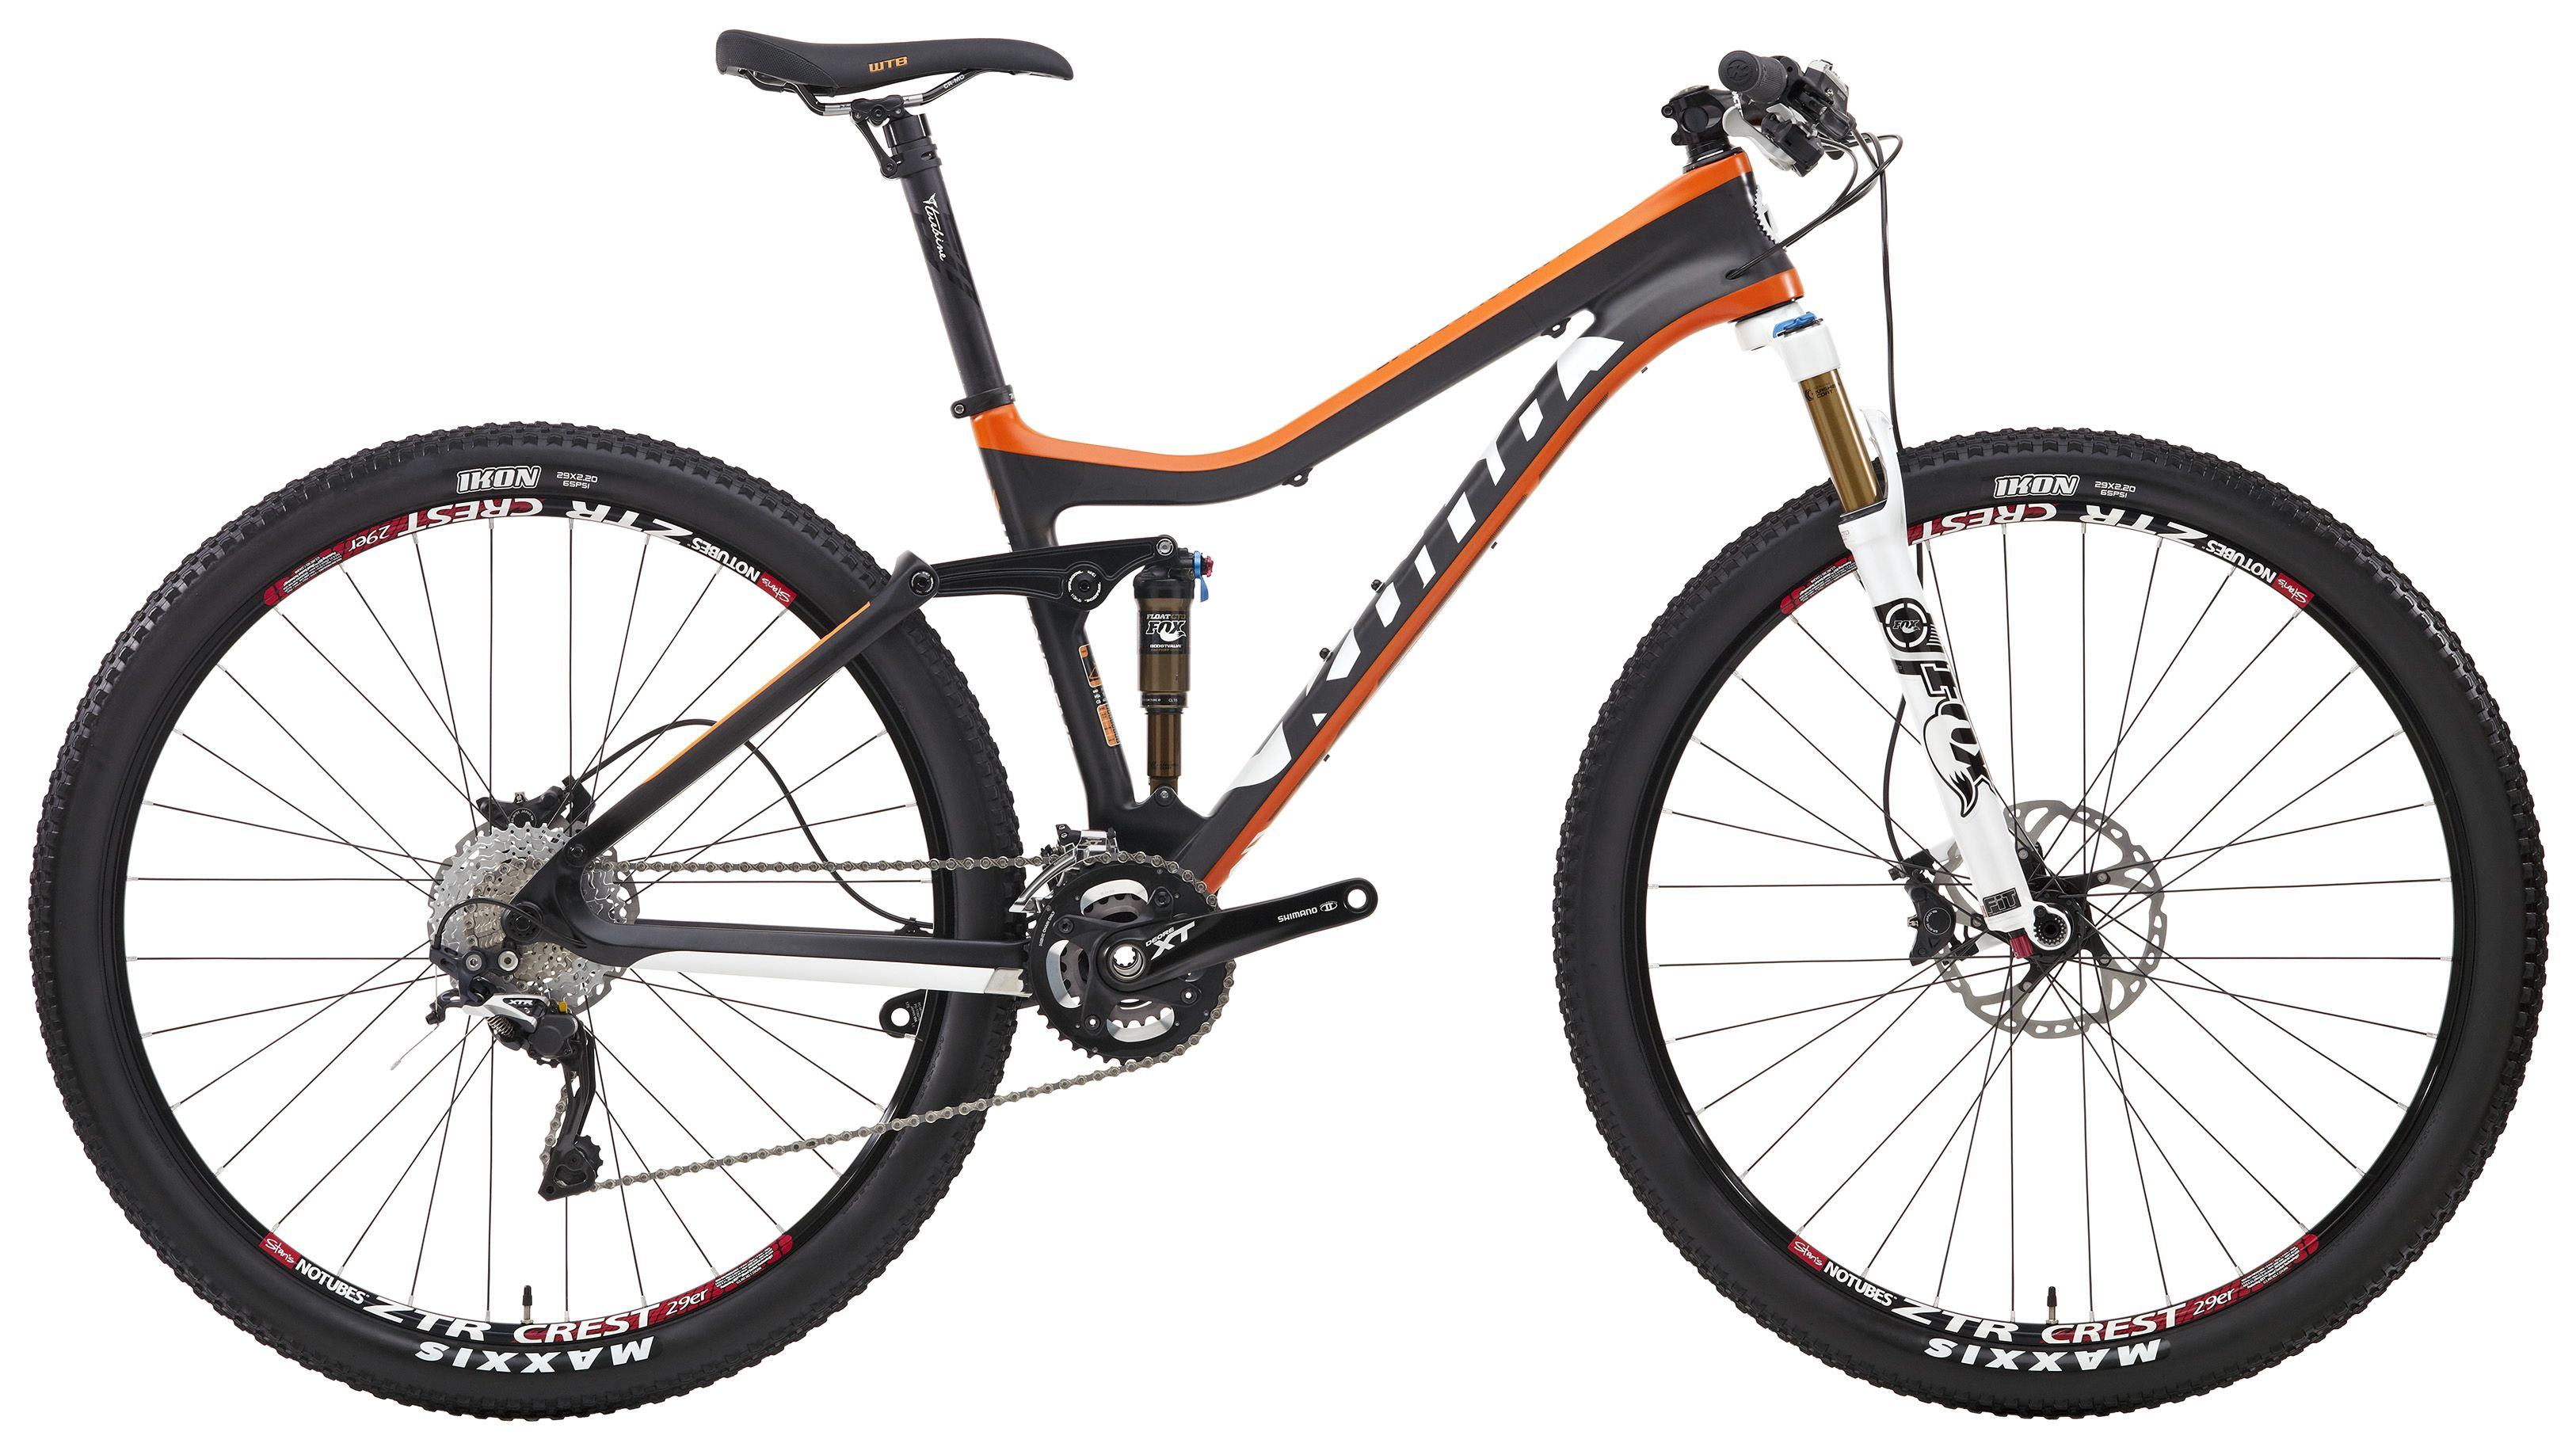 Xc Performance With A Suspension That Kona Has Been Perfecting